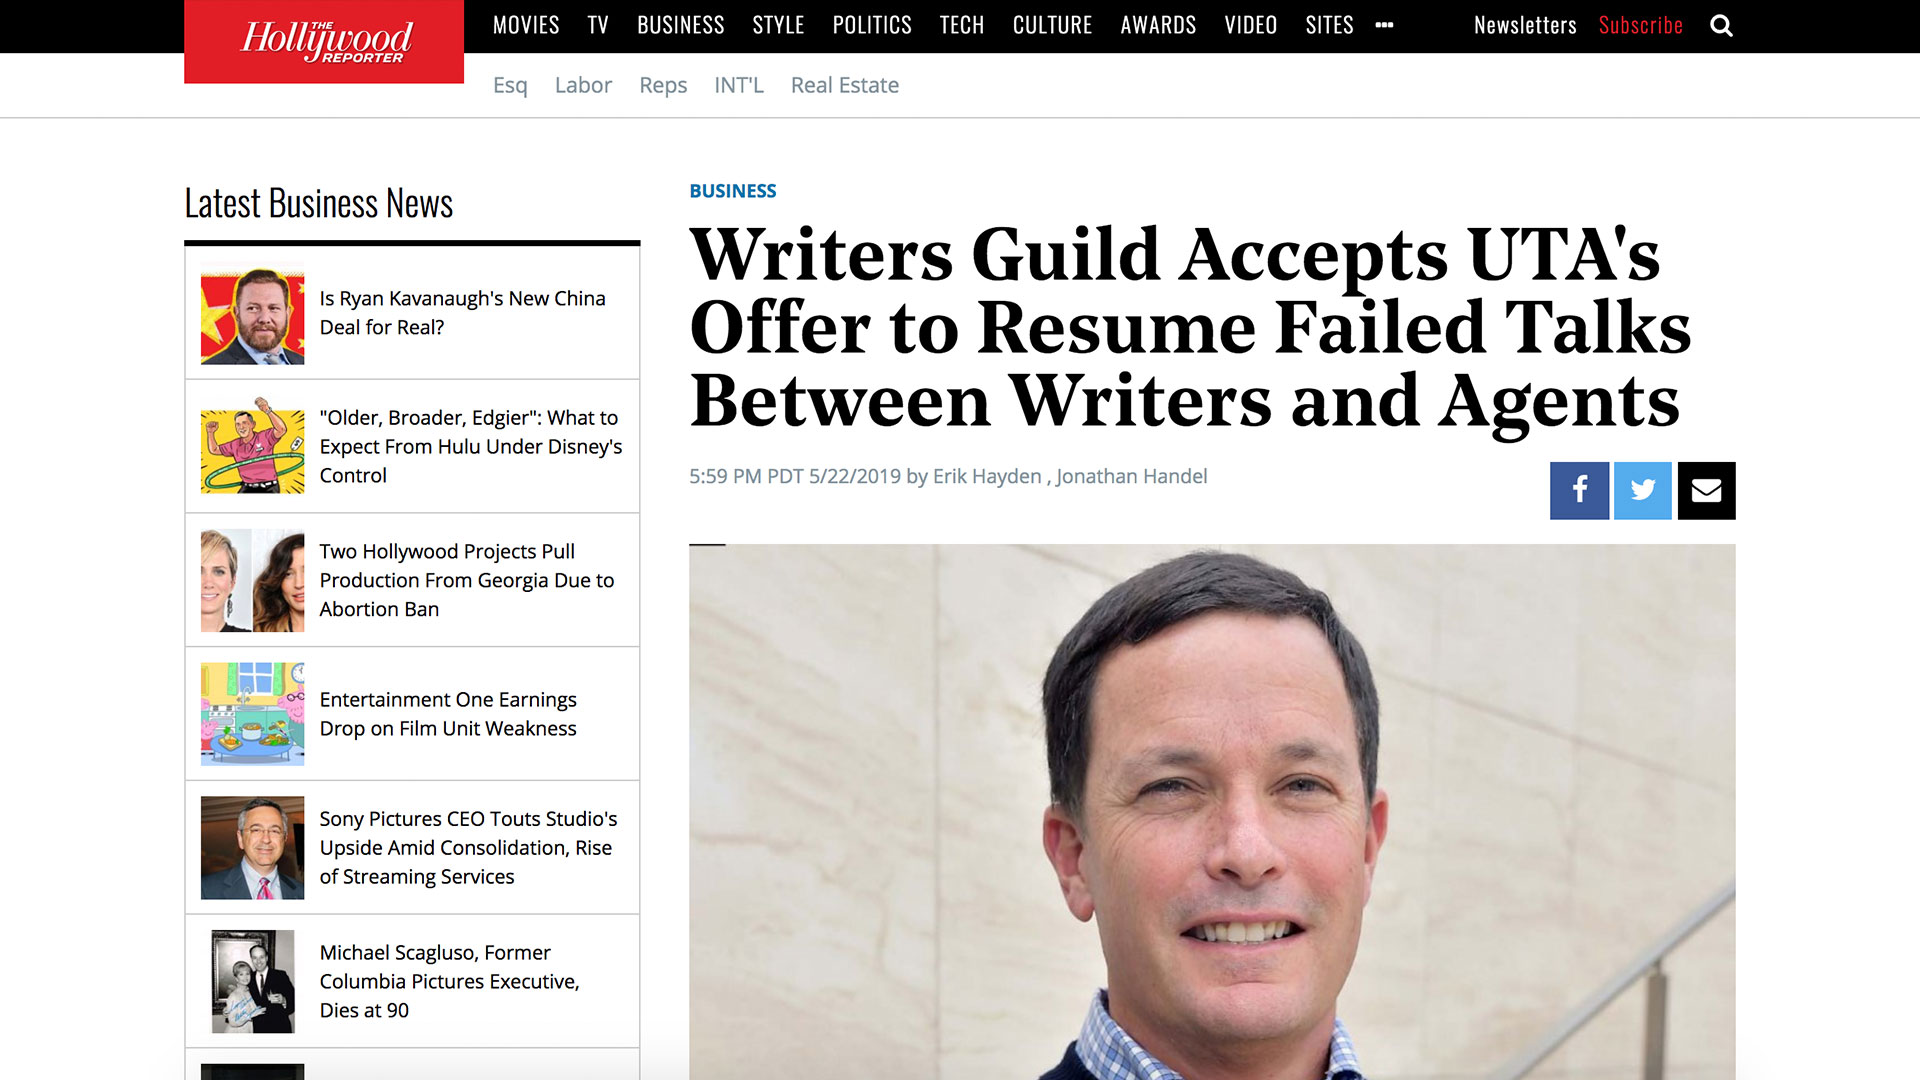 Fairness Rocks News Writers Guild Accepts UTA's Offer to Resume Failed Talks Between Writers and Agents